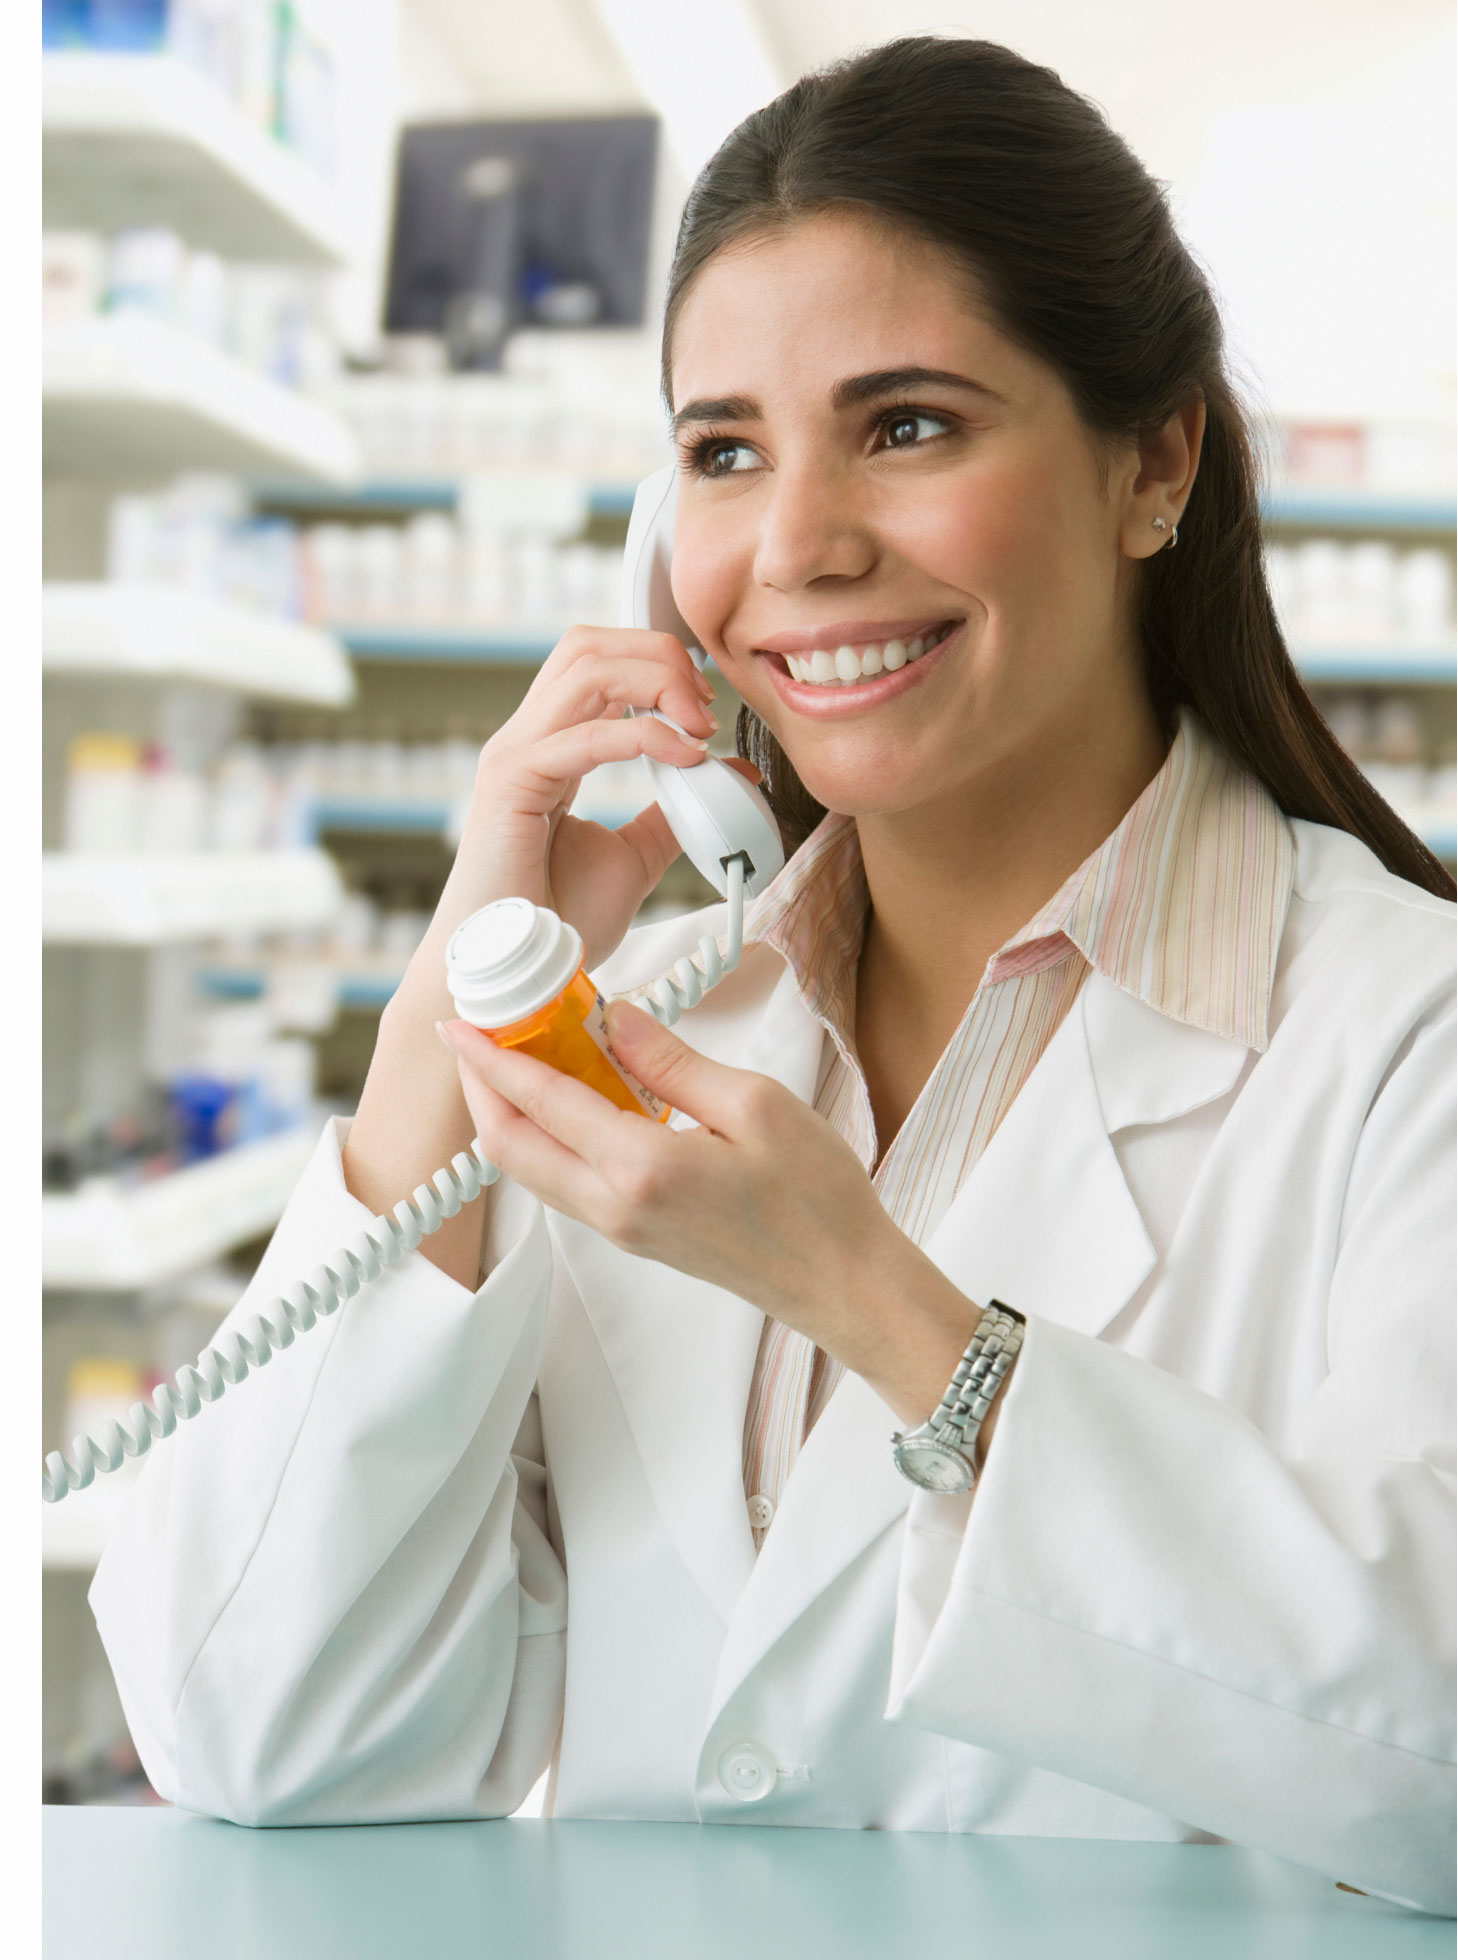 pharmacy tech holding a pill bottle while talking on the phone - Cvs Pharmacy Technician Job